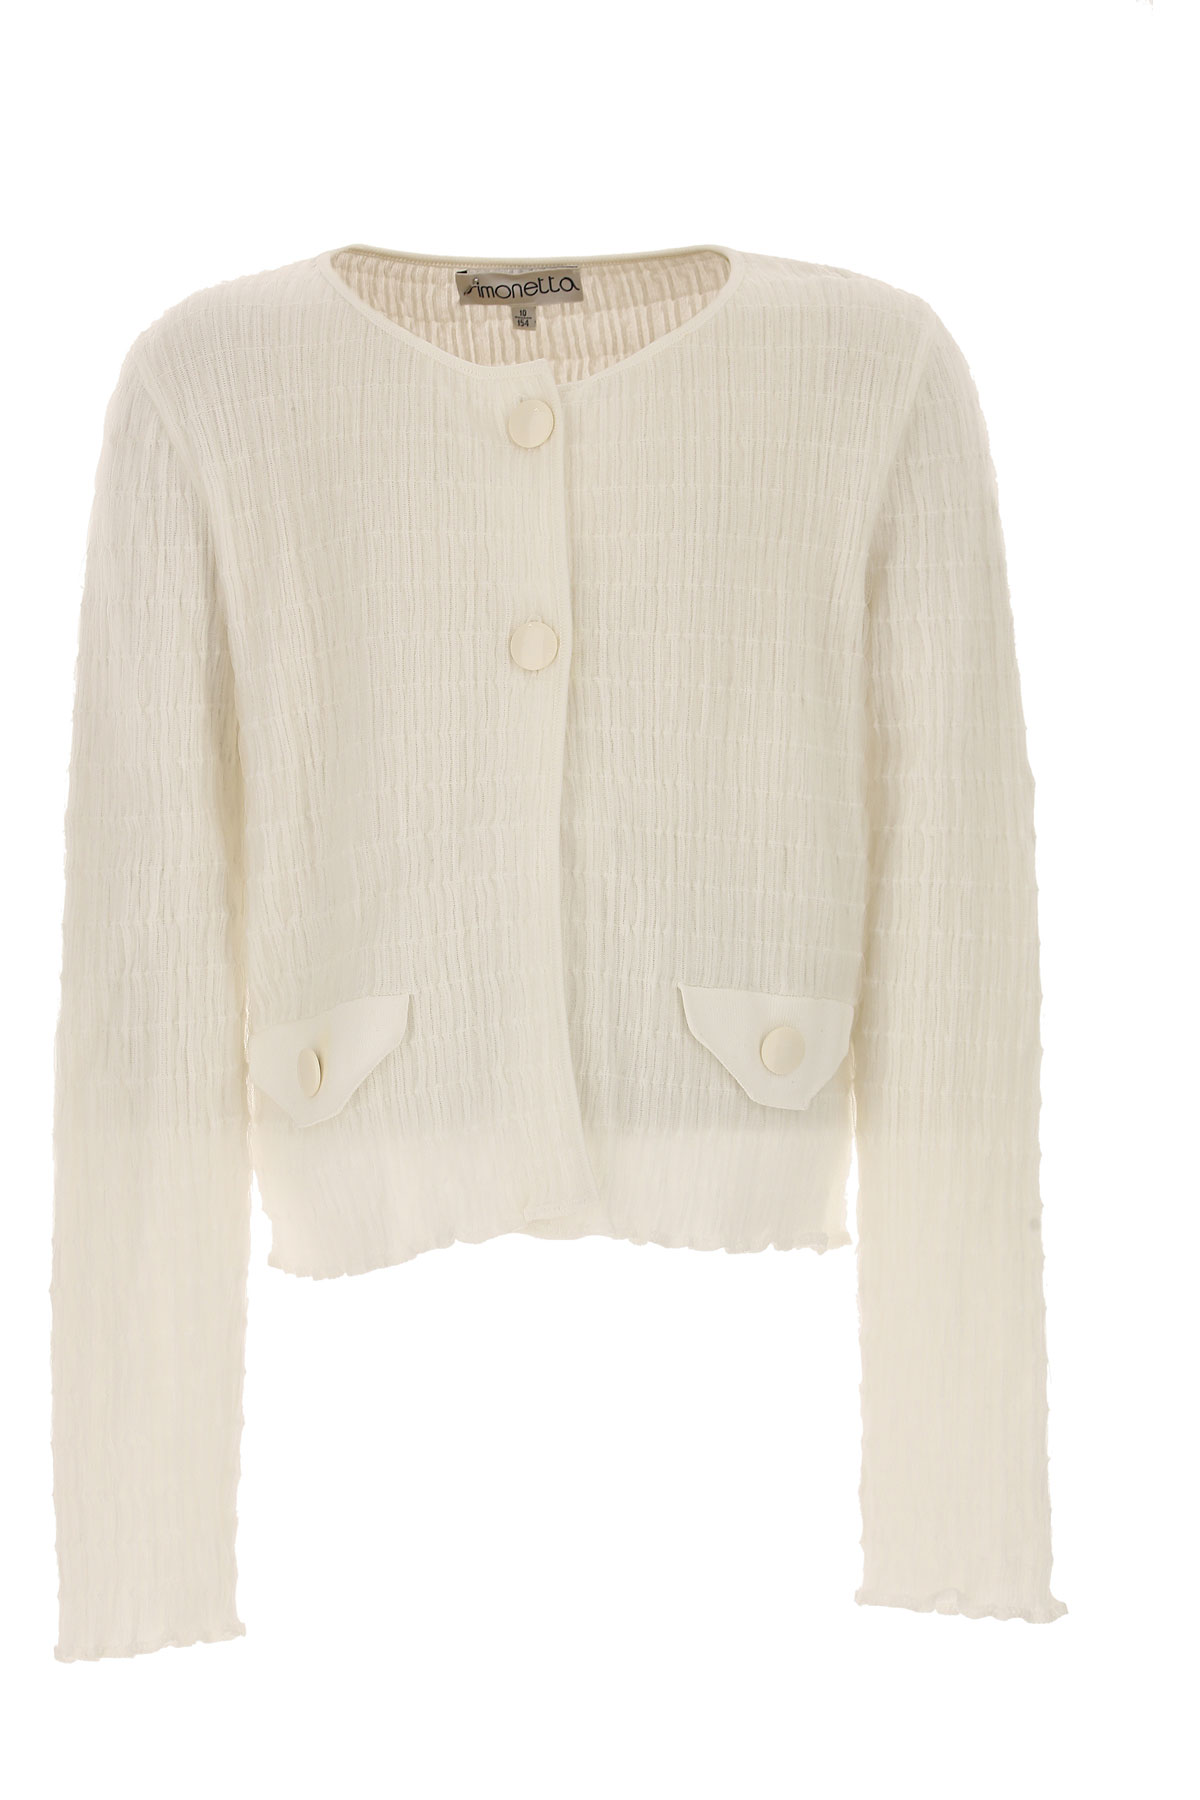 Image of Simonetta Kids Sweaters for Girls On Sale in Outlet, White, Cotton, 2017, 10Y 14Y